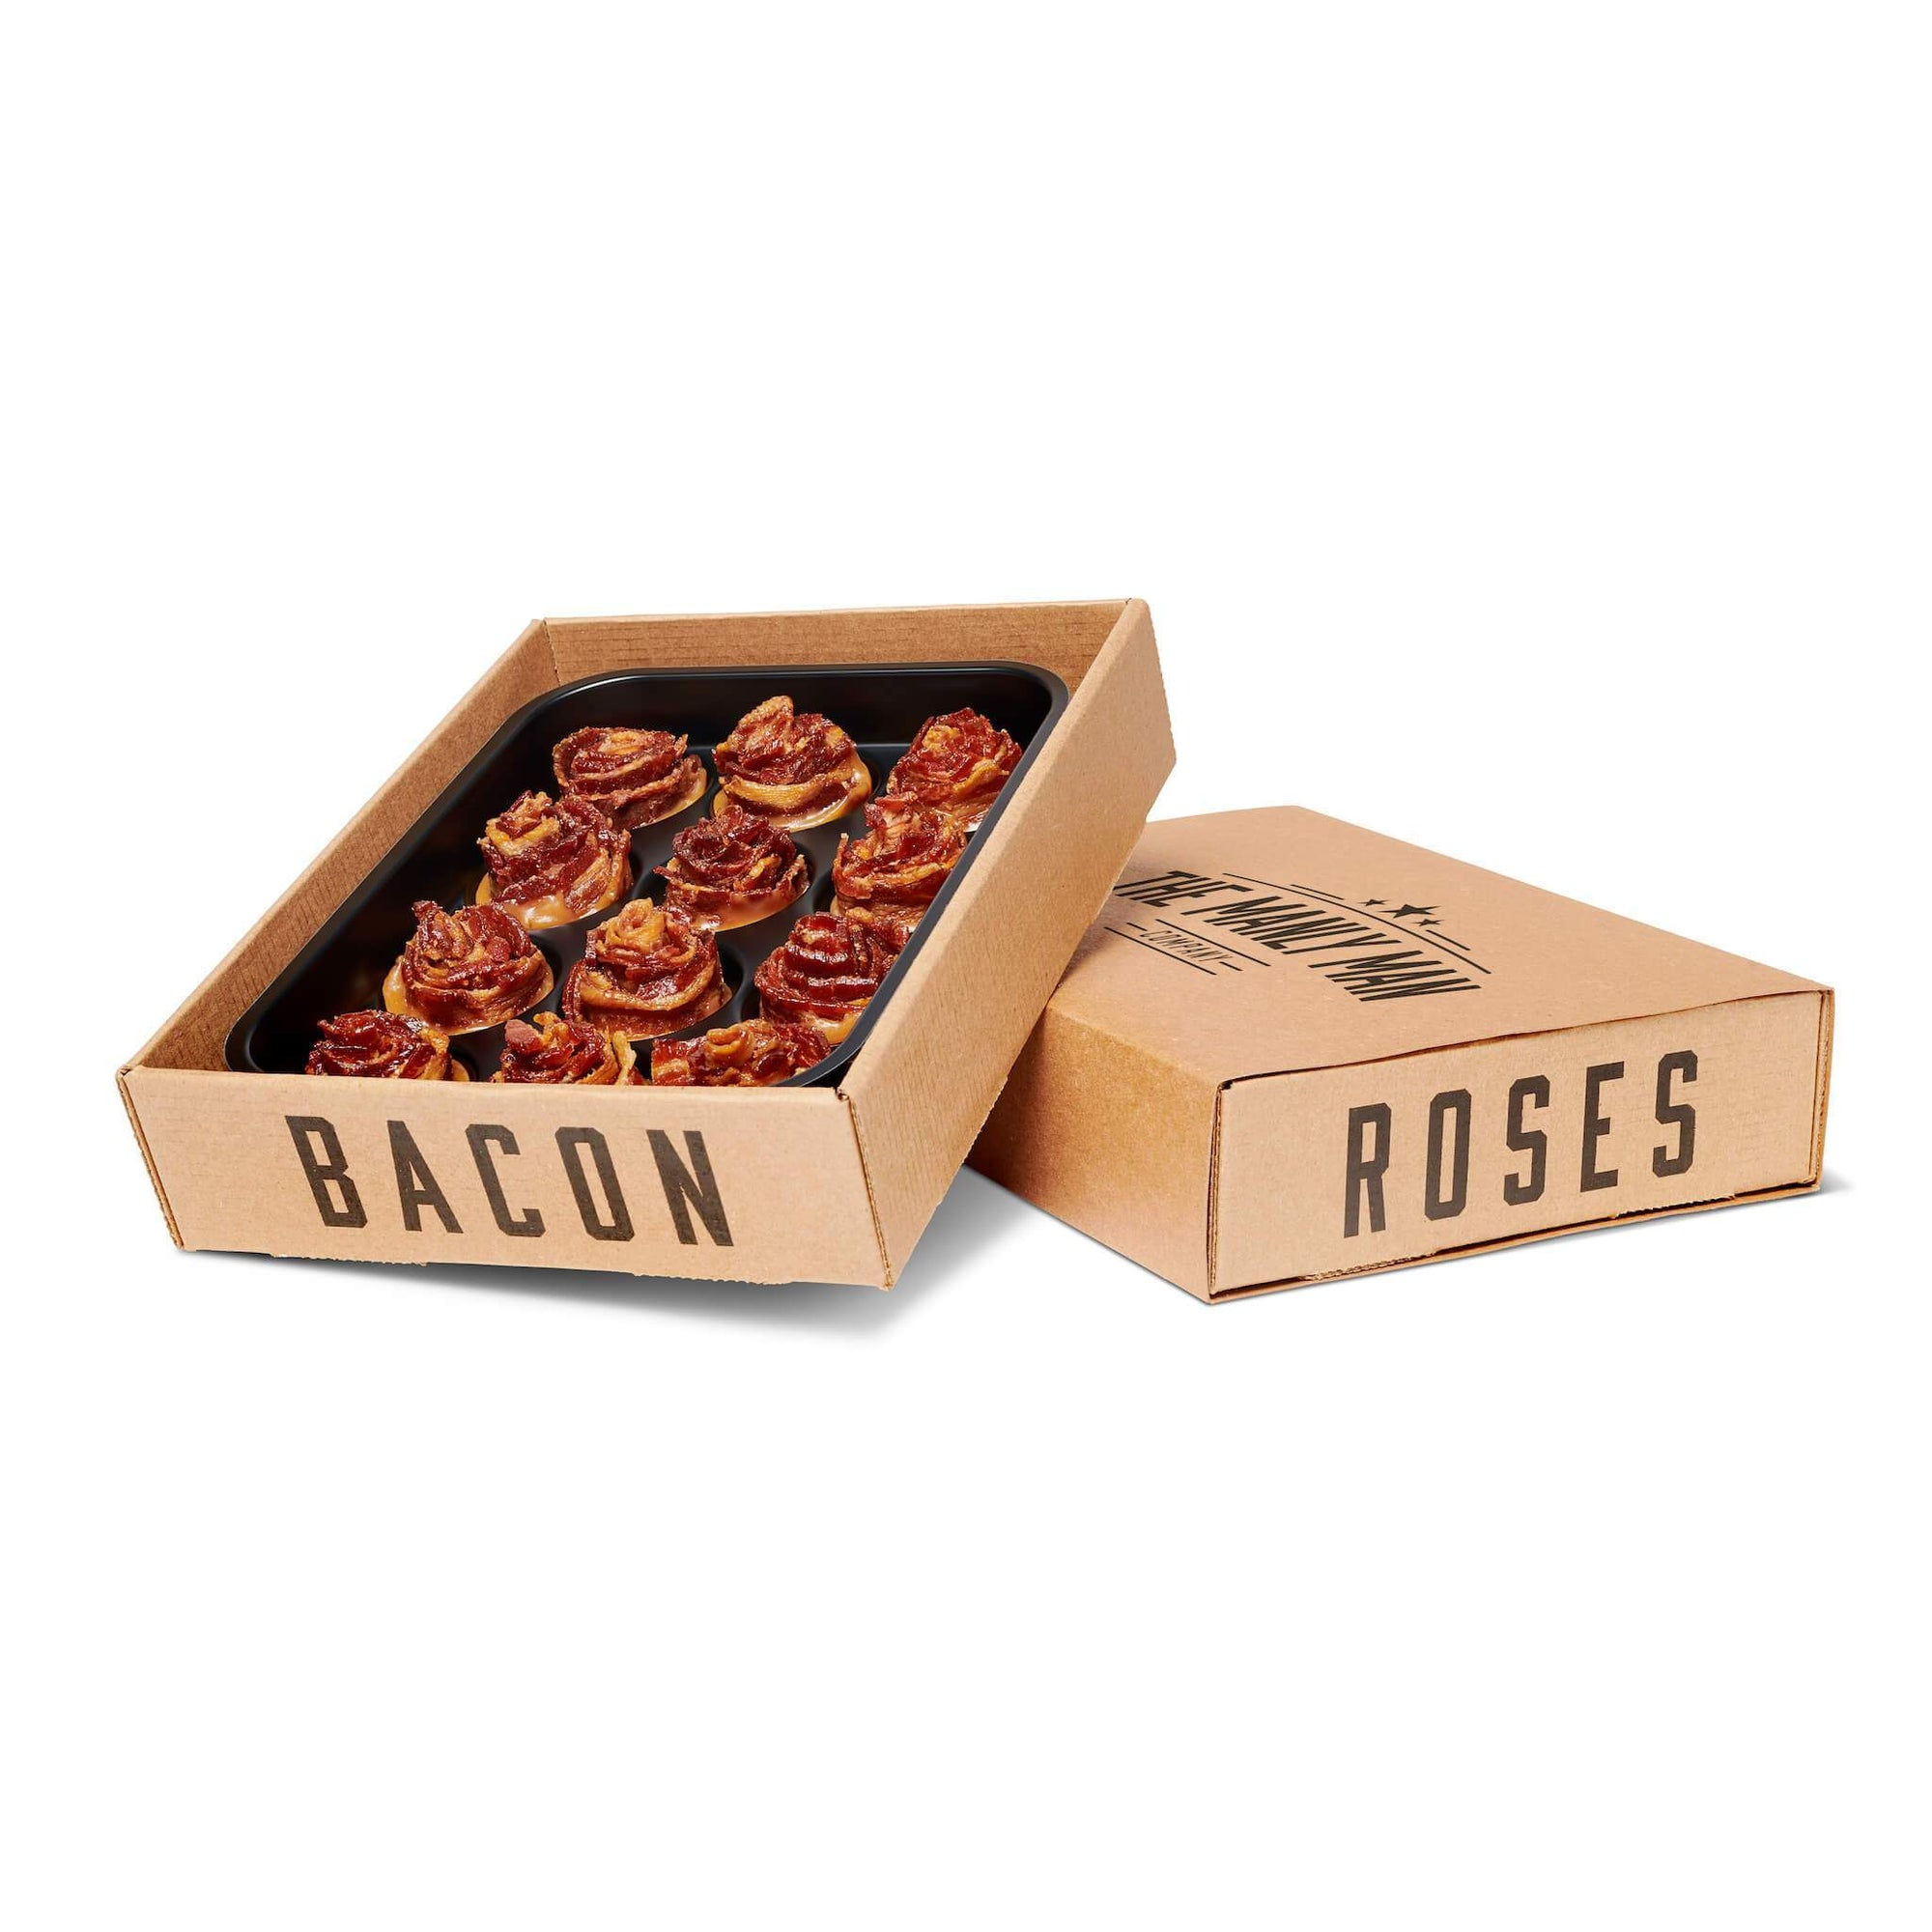 BACON ROSES + Caramel Full Dozen